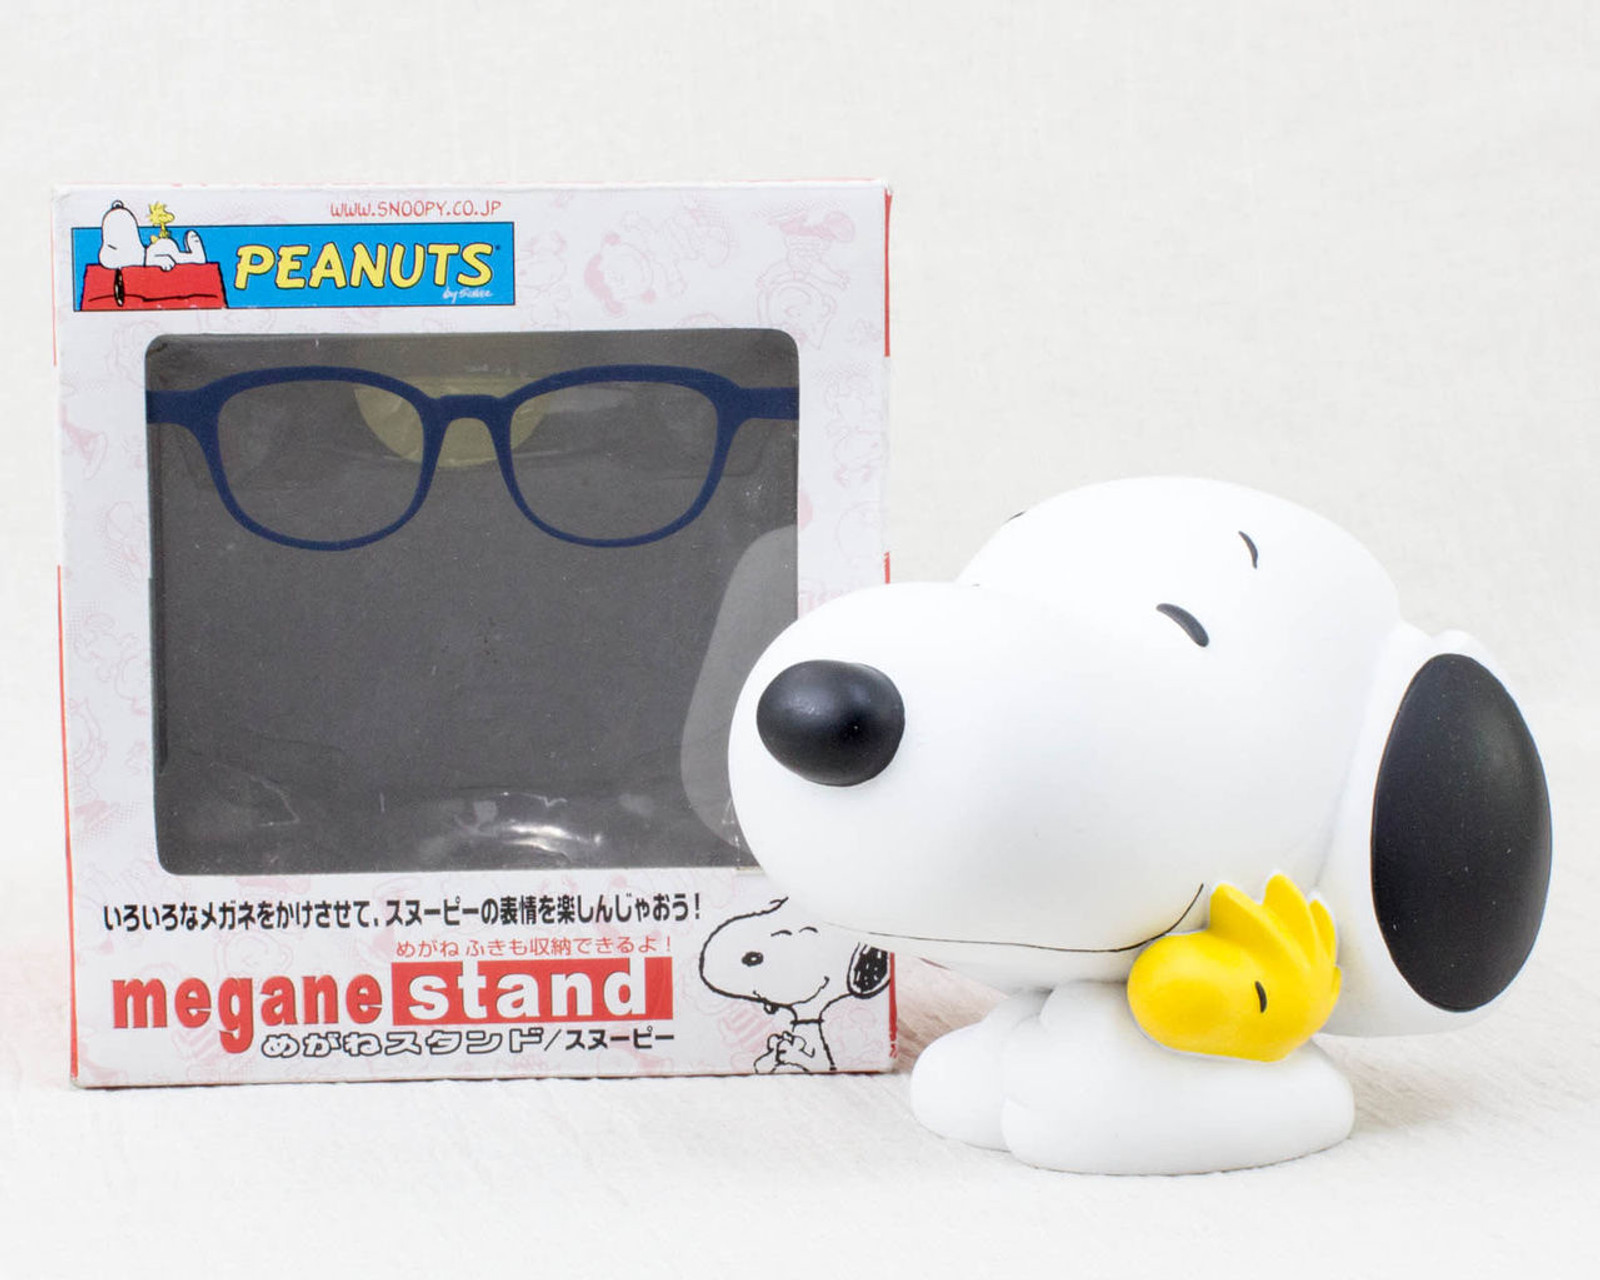 Snoopy Glasses Stand Figure Peanuts Magie Boite JAPAN ANIME